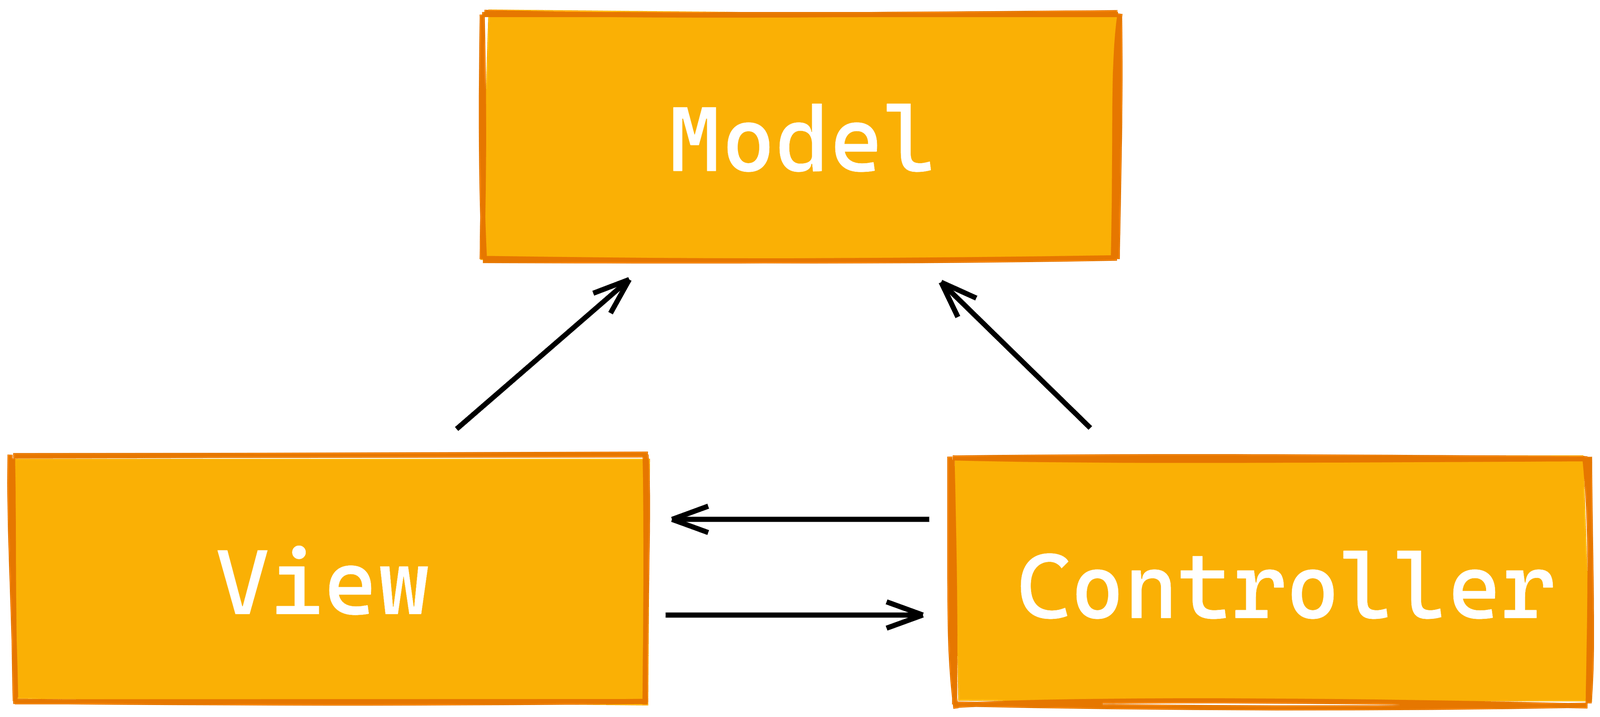 View points to Model and to Controller. Controller points to View and Model.